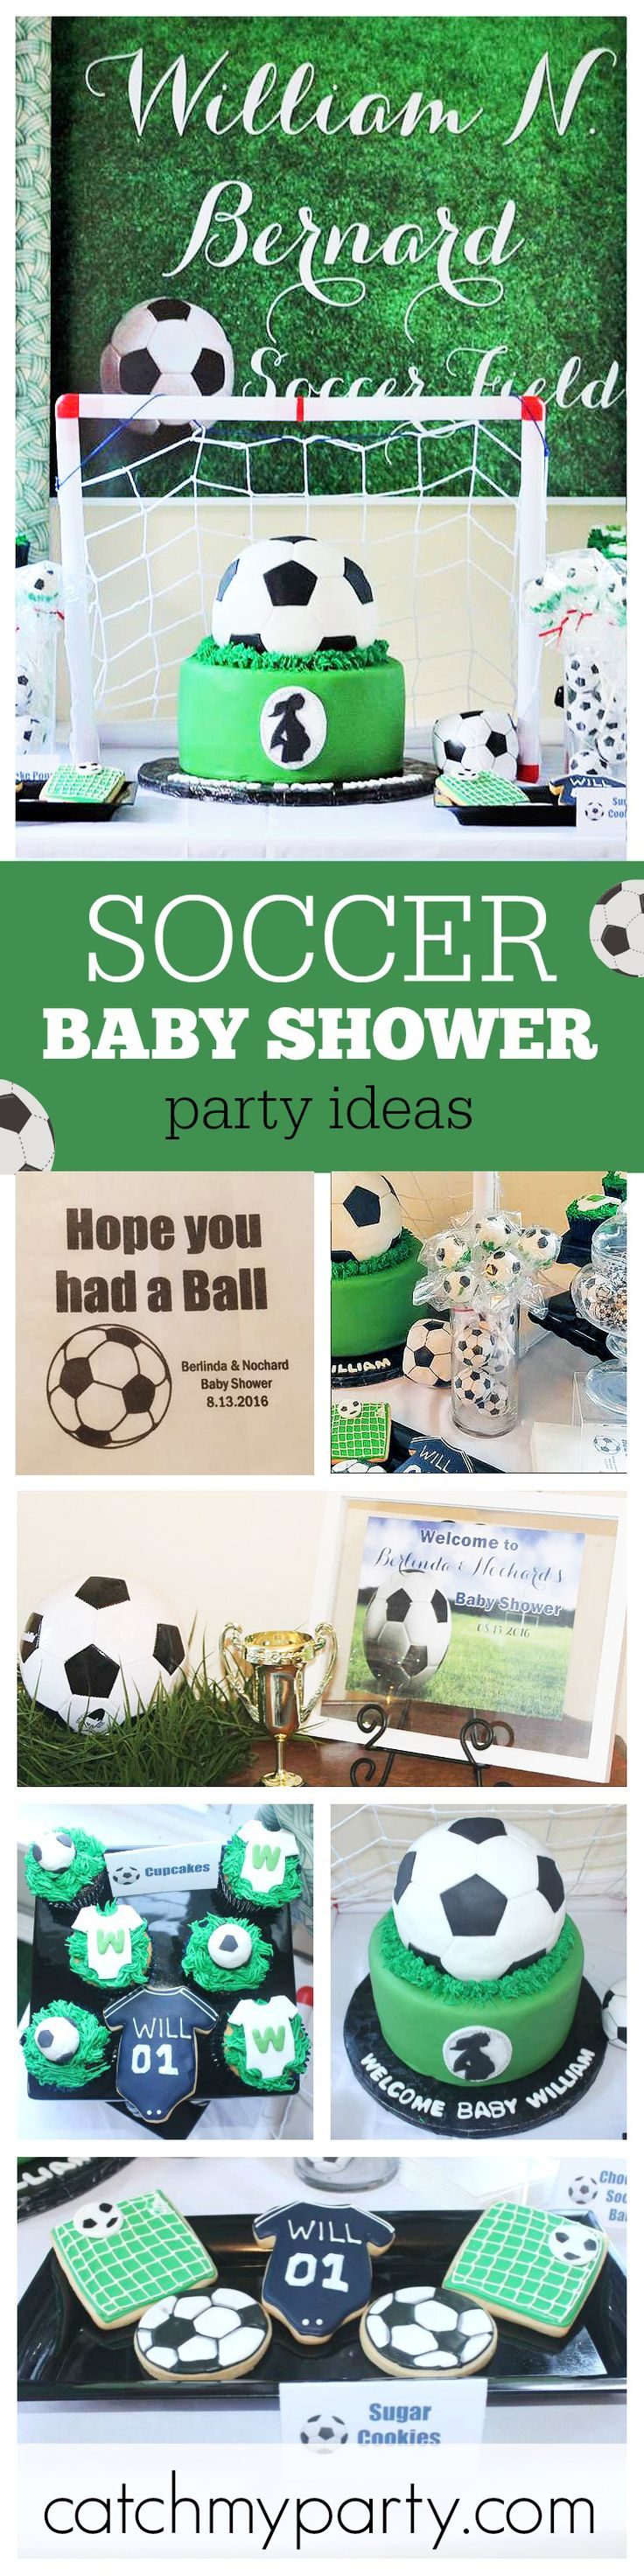 Soccer fans are definitely going to want a soccer baby shower for their little baby boys! The cupcakes and cookies are adorable! See more party ideas at CatchMyParty.com